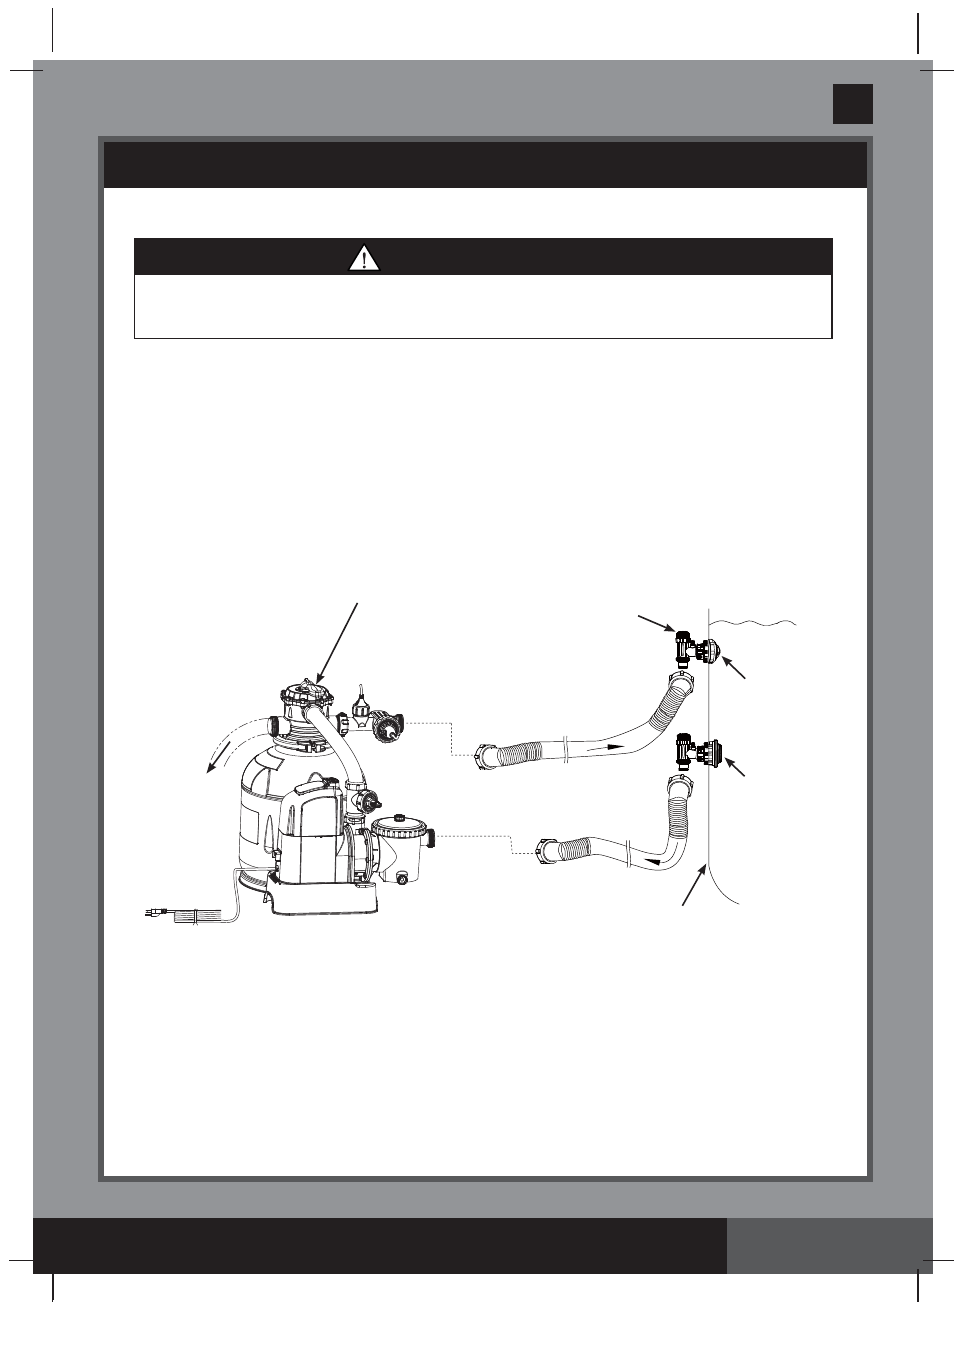 Save these instructions, Warning, Sand filter pump hose ...